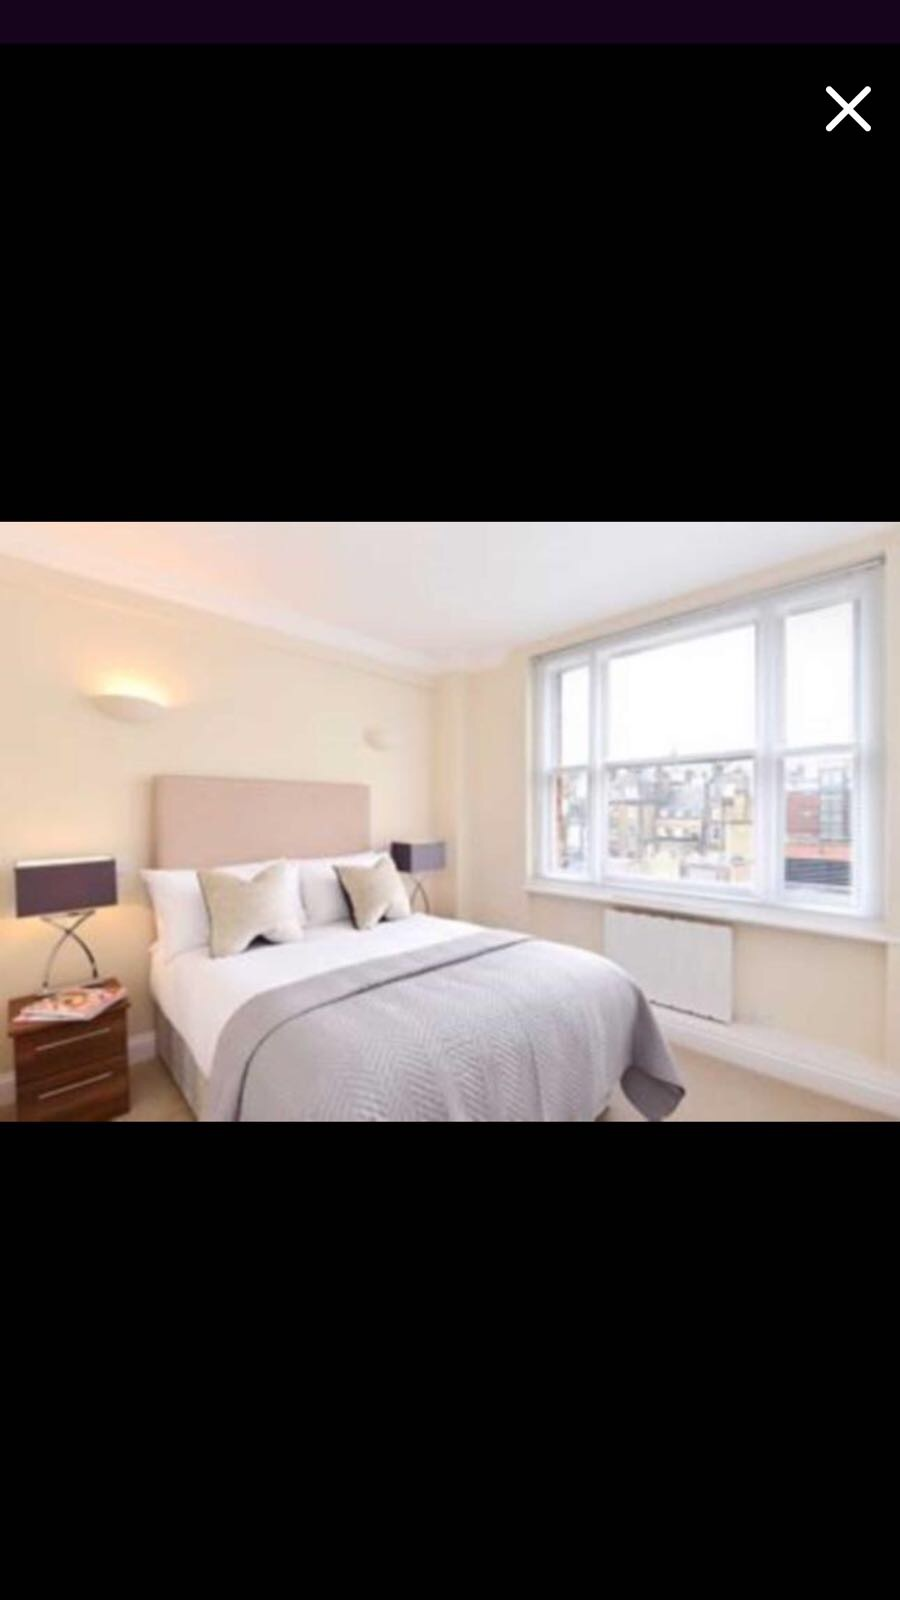 1 Bedroom Apartment For Sale Hill Street London W1j 5na